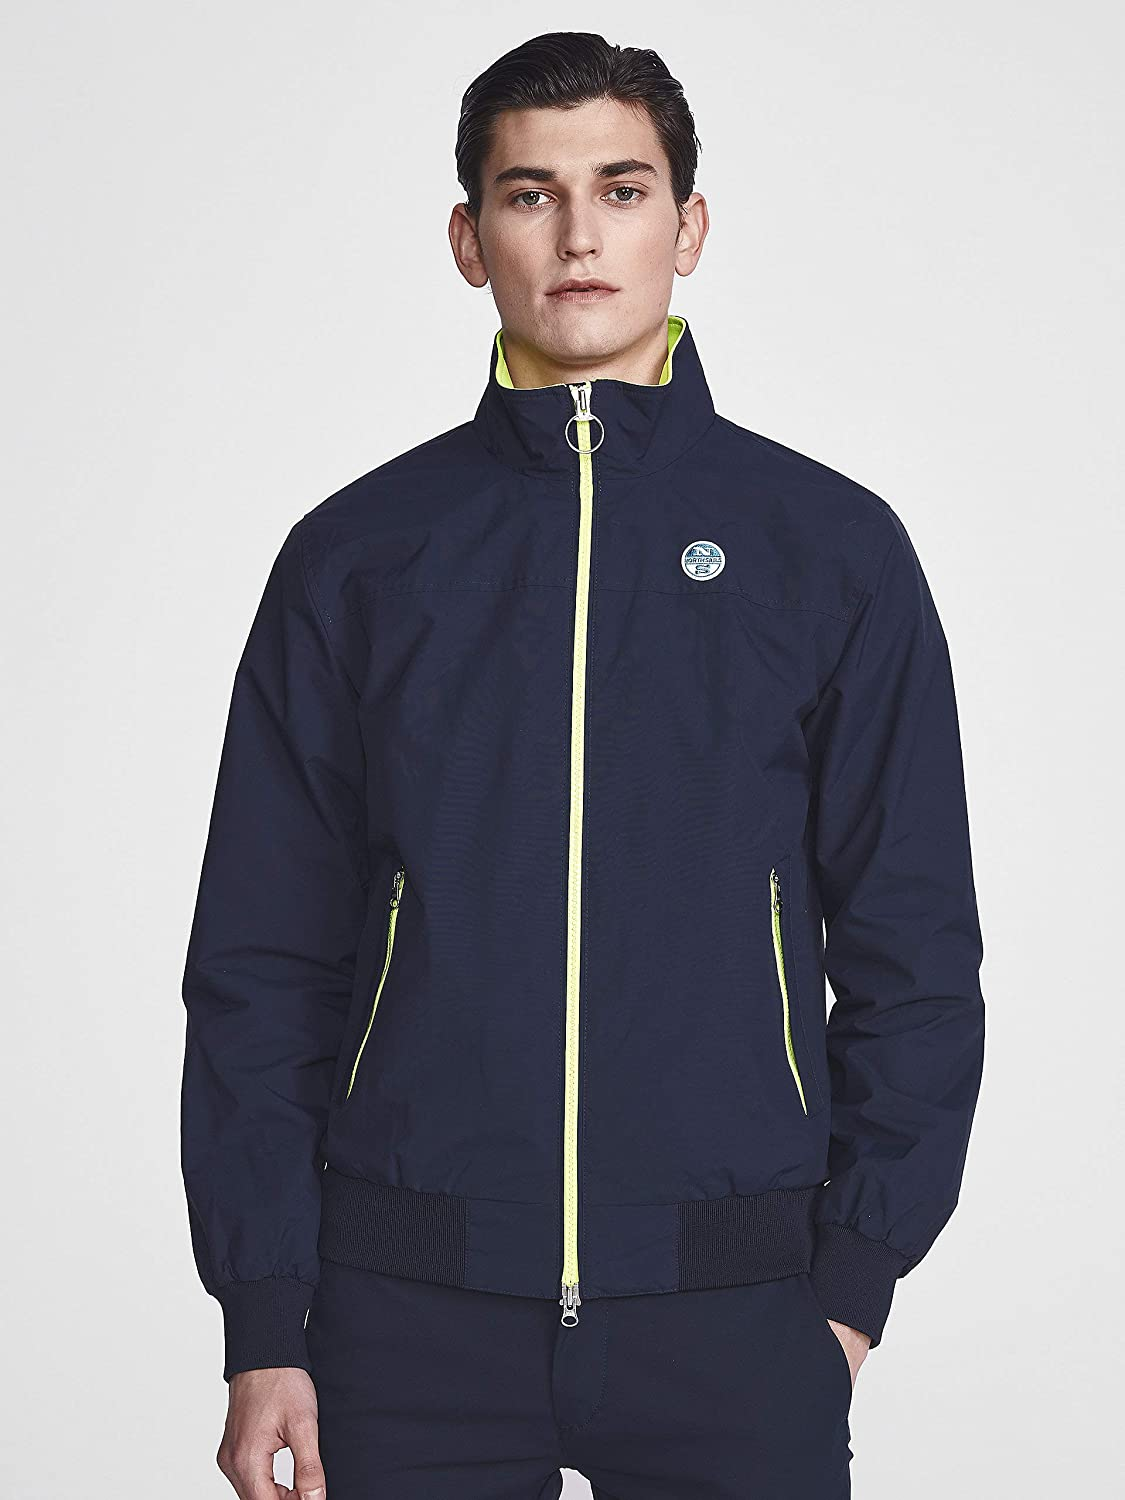 NORTH SAILS Sailor Mens Jacket in Recycled Nylon and Breathable Mesh Lining with Seasonal Neon Detailing